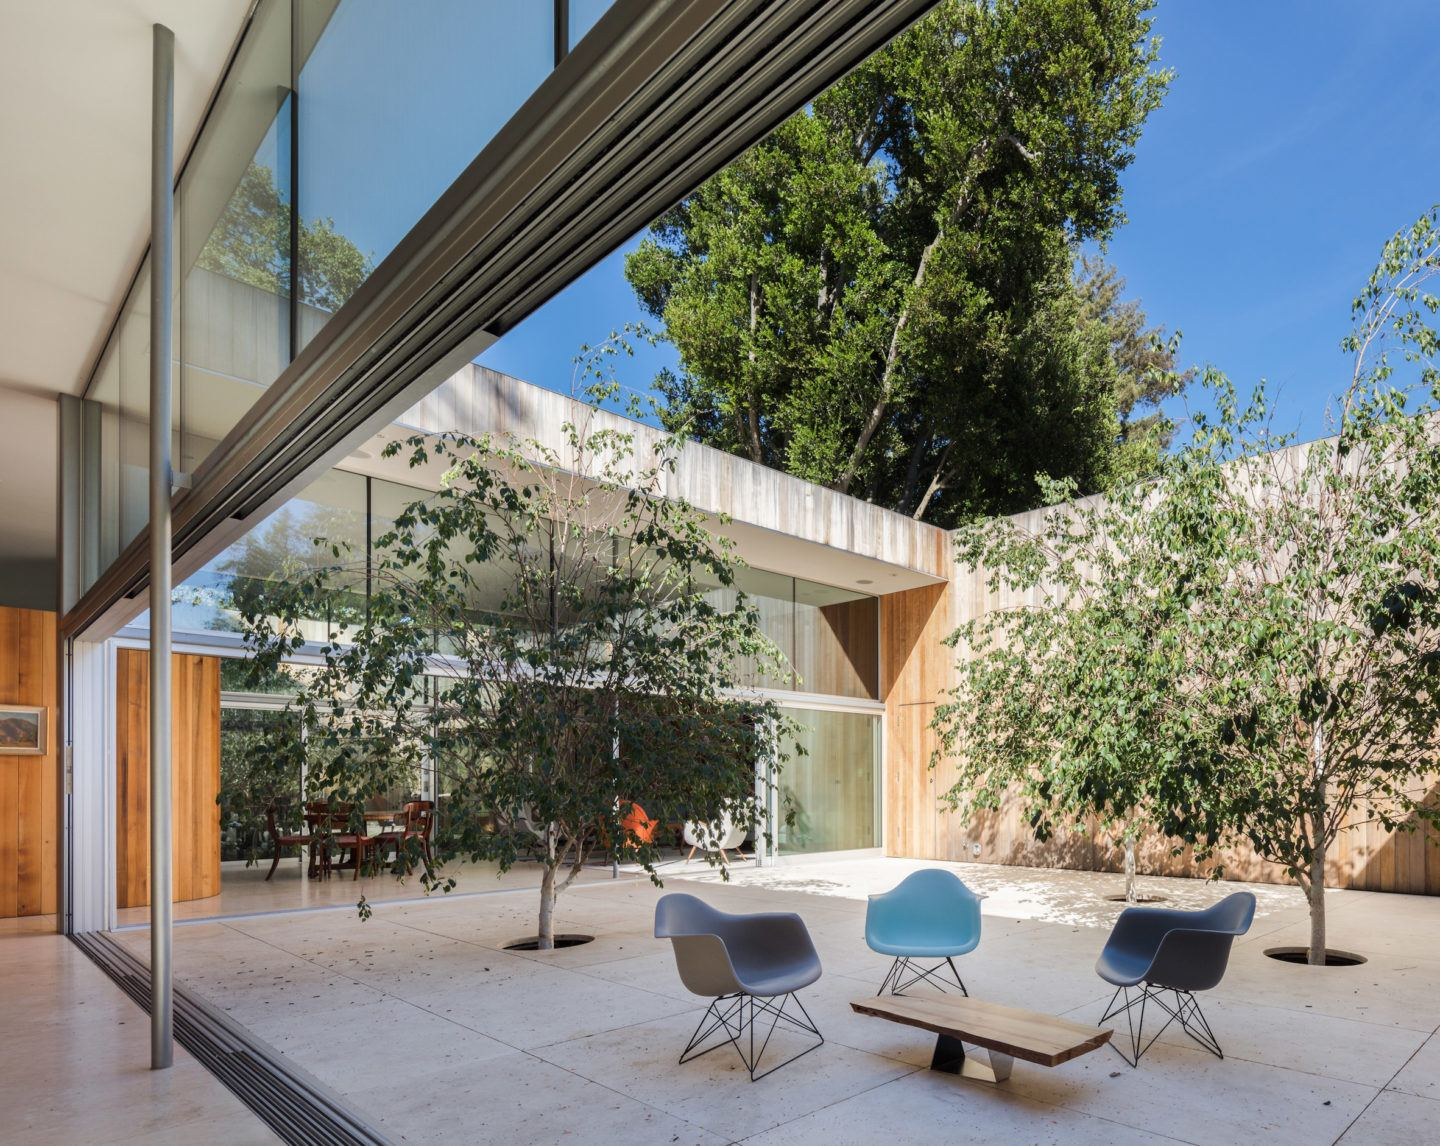 IGNANT-Architecture-Craig-Steely-Architecture-Roofless-House-7